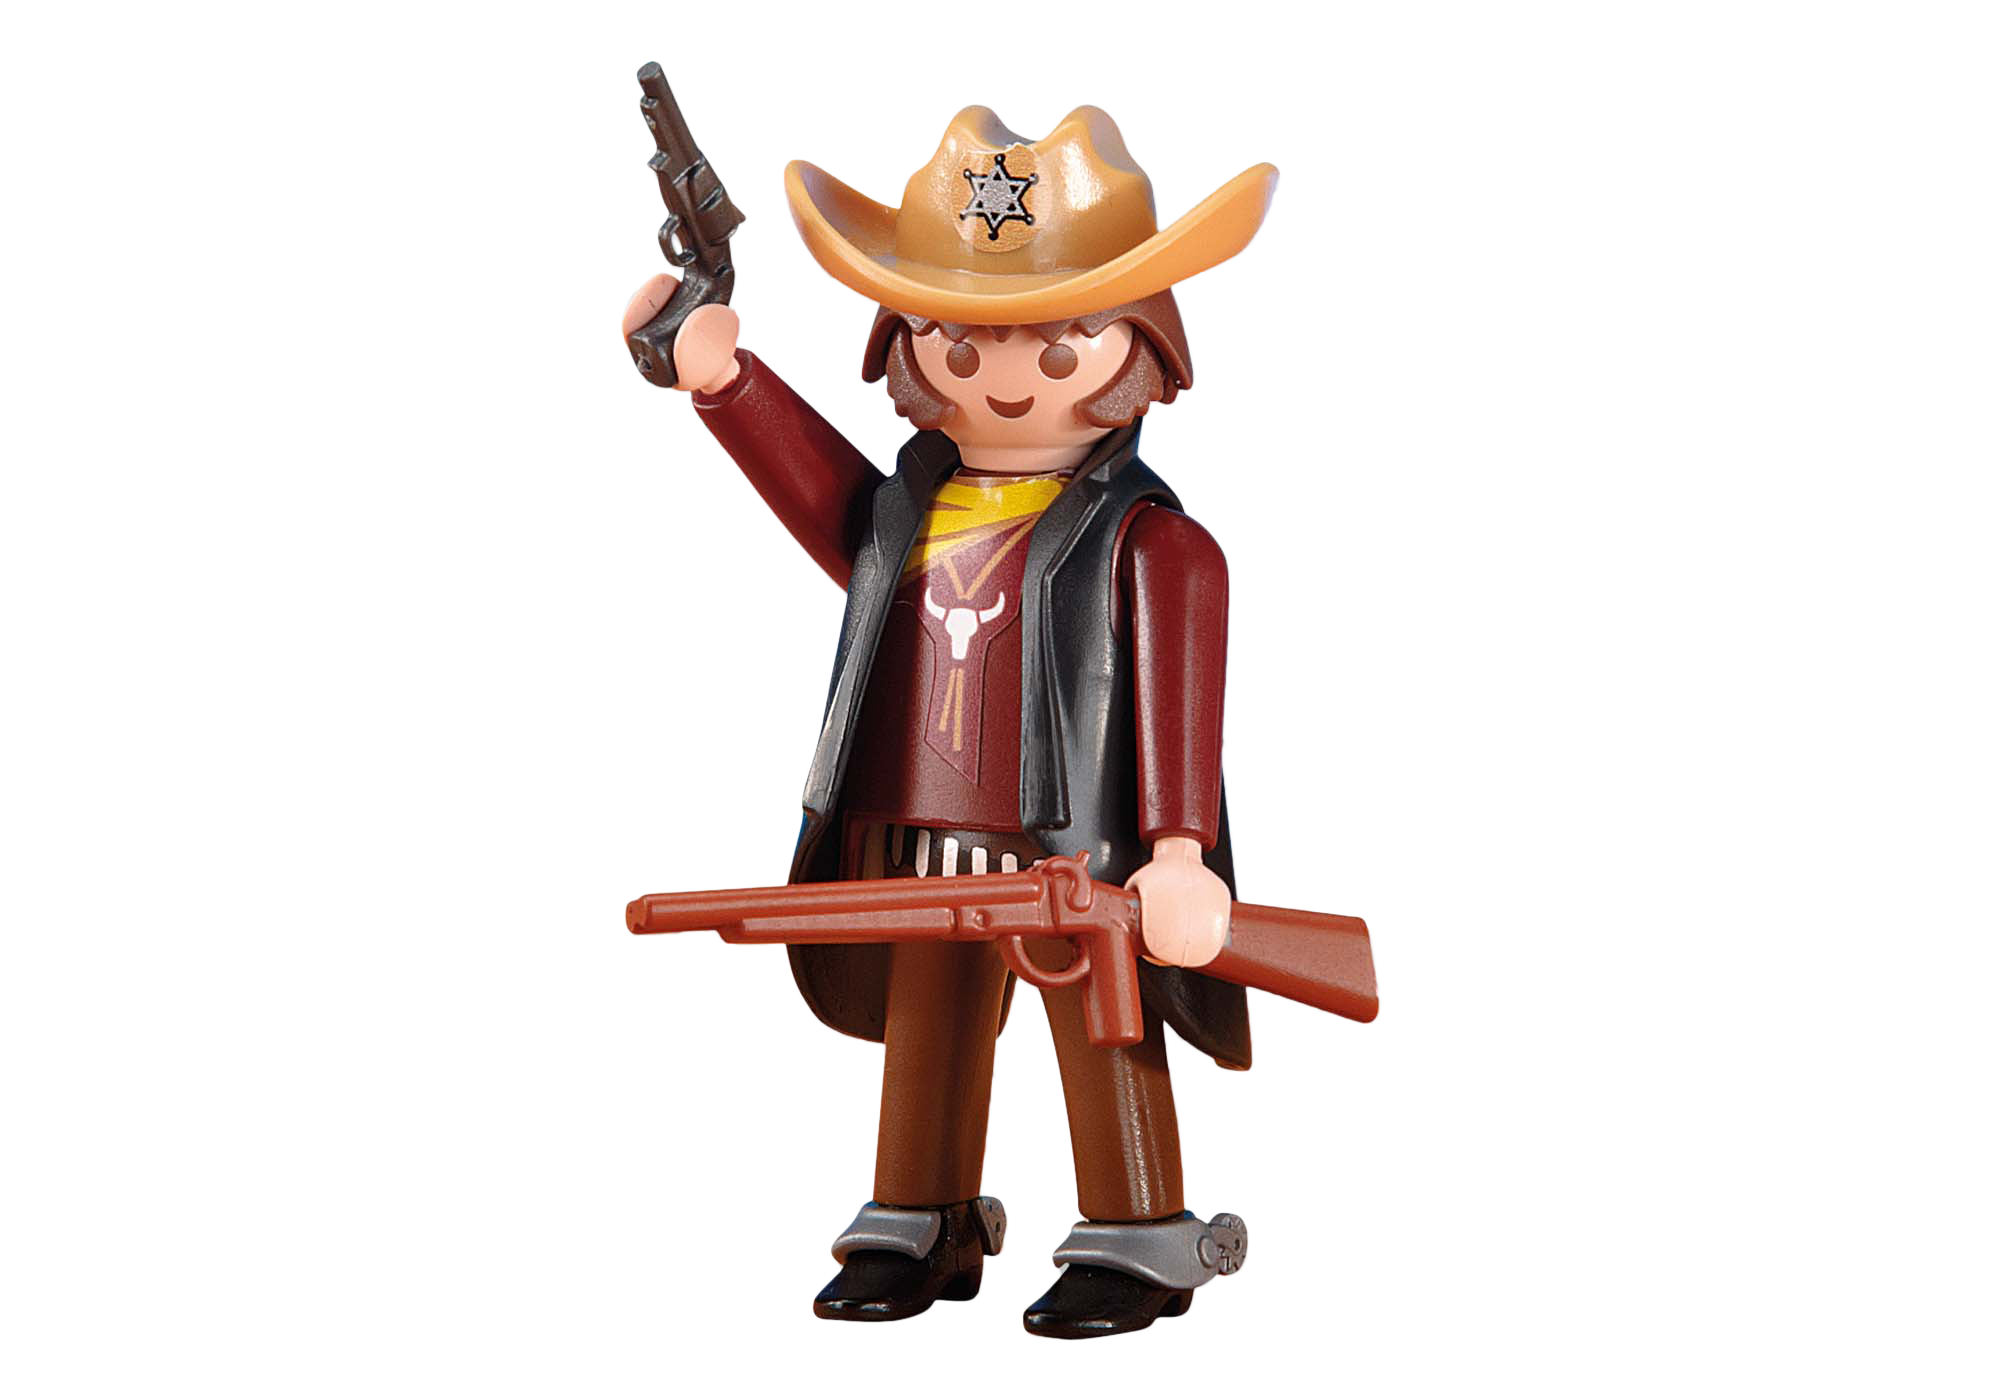 http://media.playmobil.com/i/playmobil/6277_product_detail/Western-Sheriff